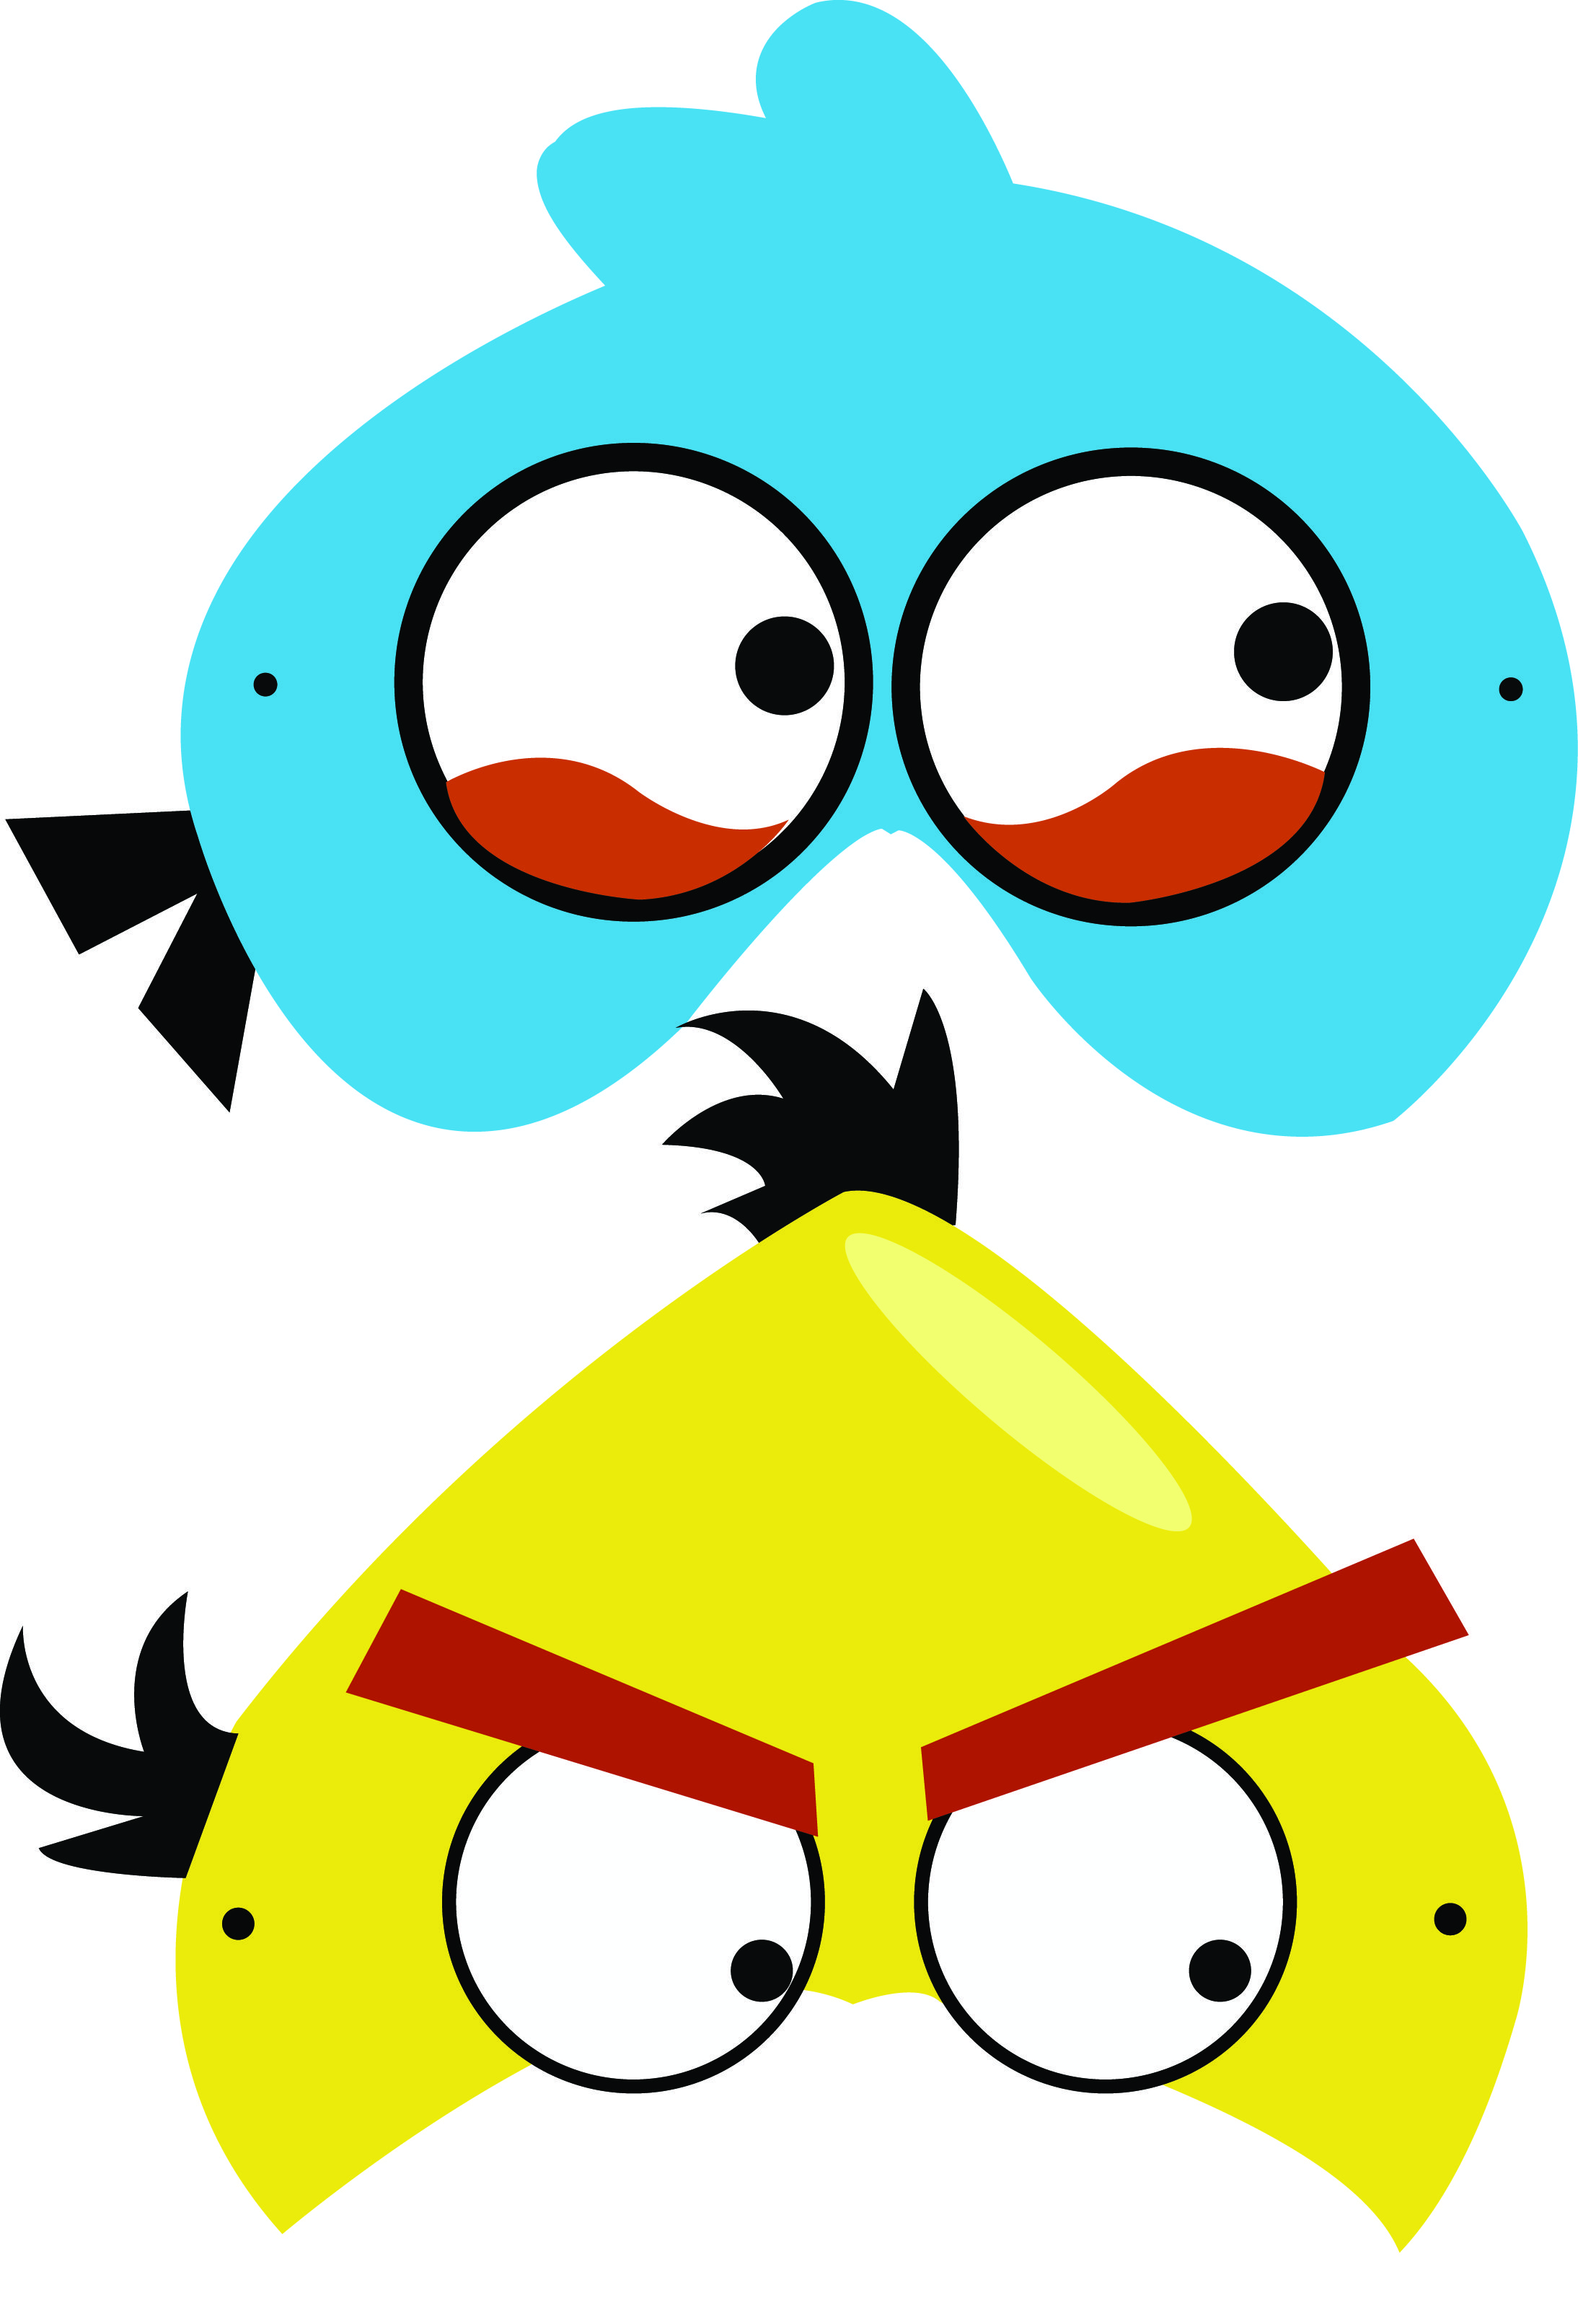 Angry birds free printable masks | Angry Birds | Pinterest ...